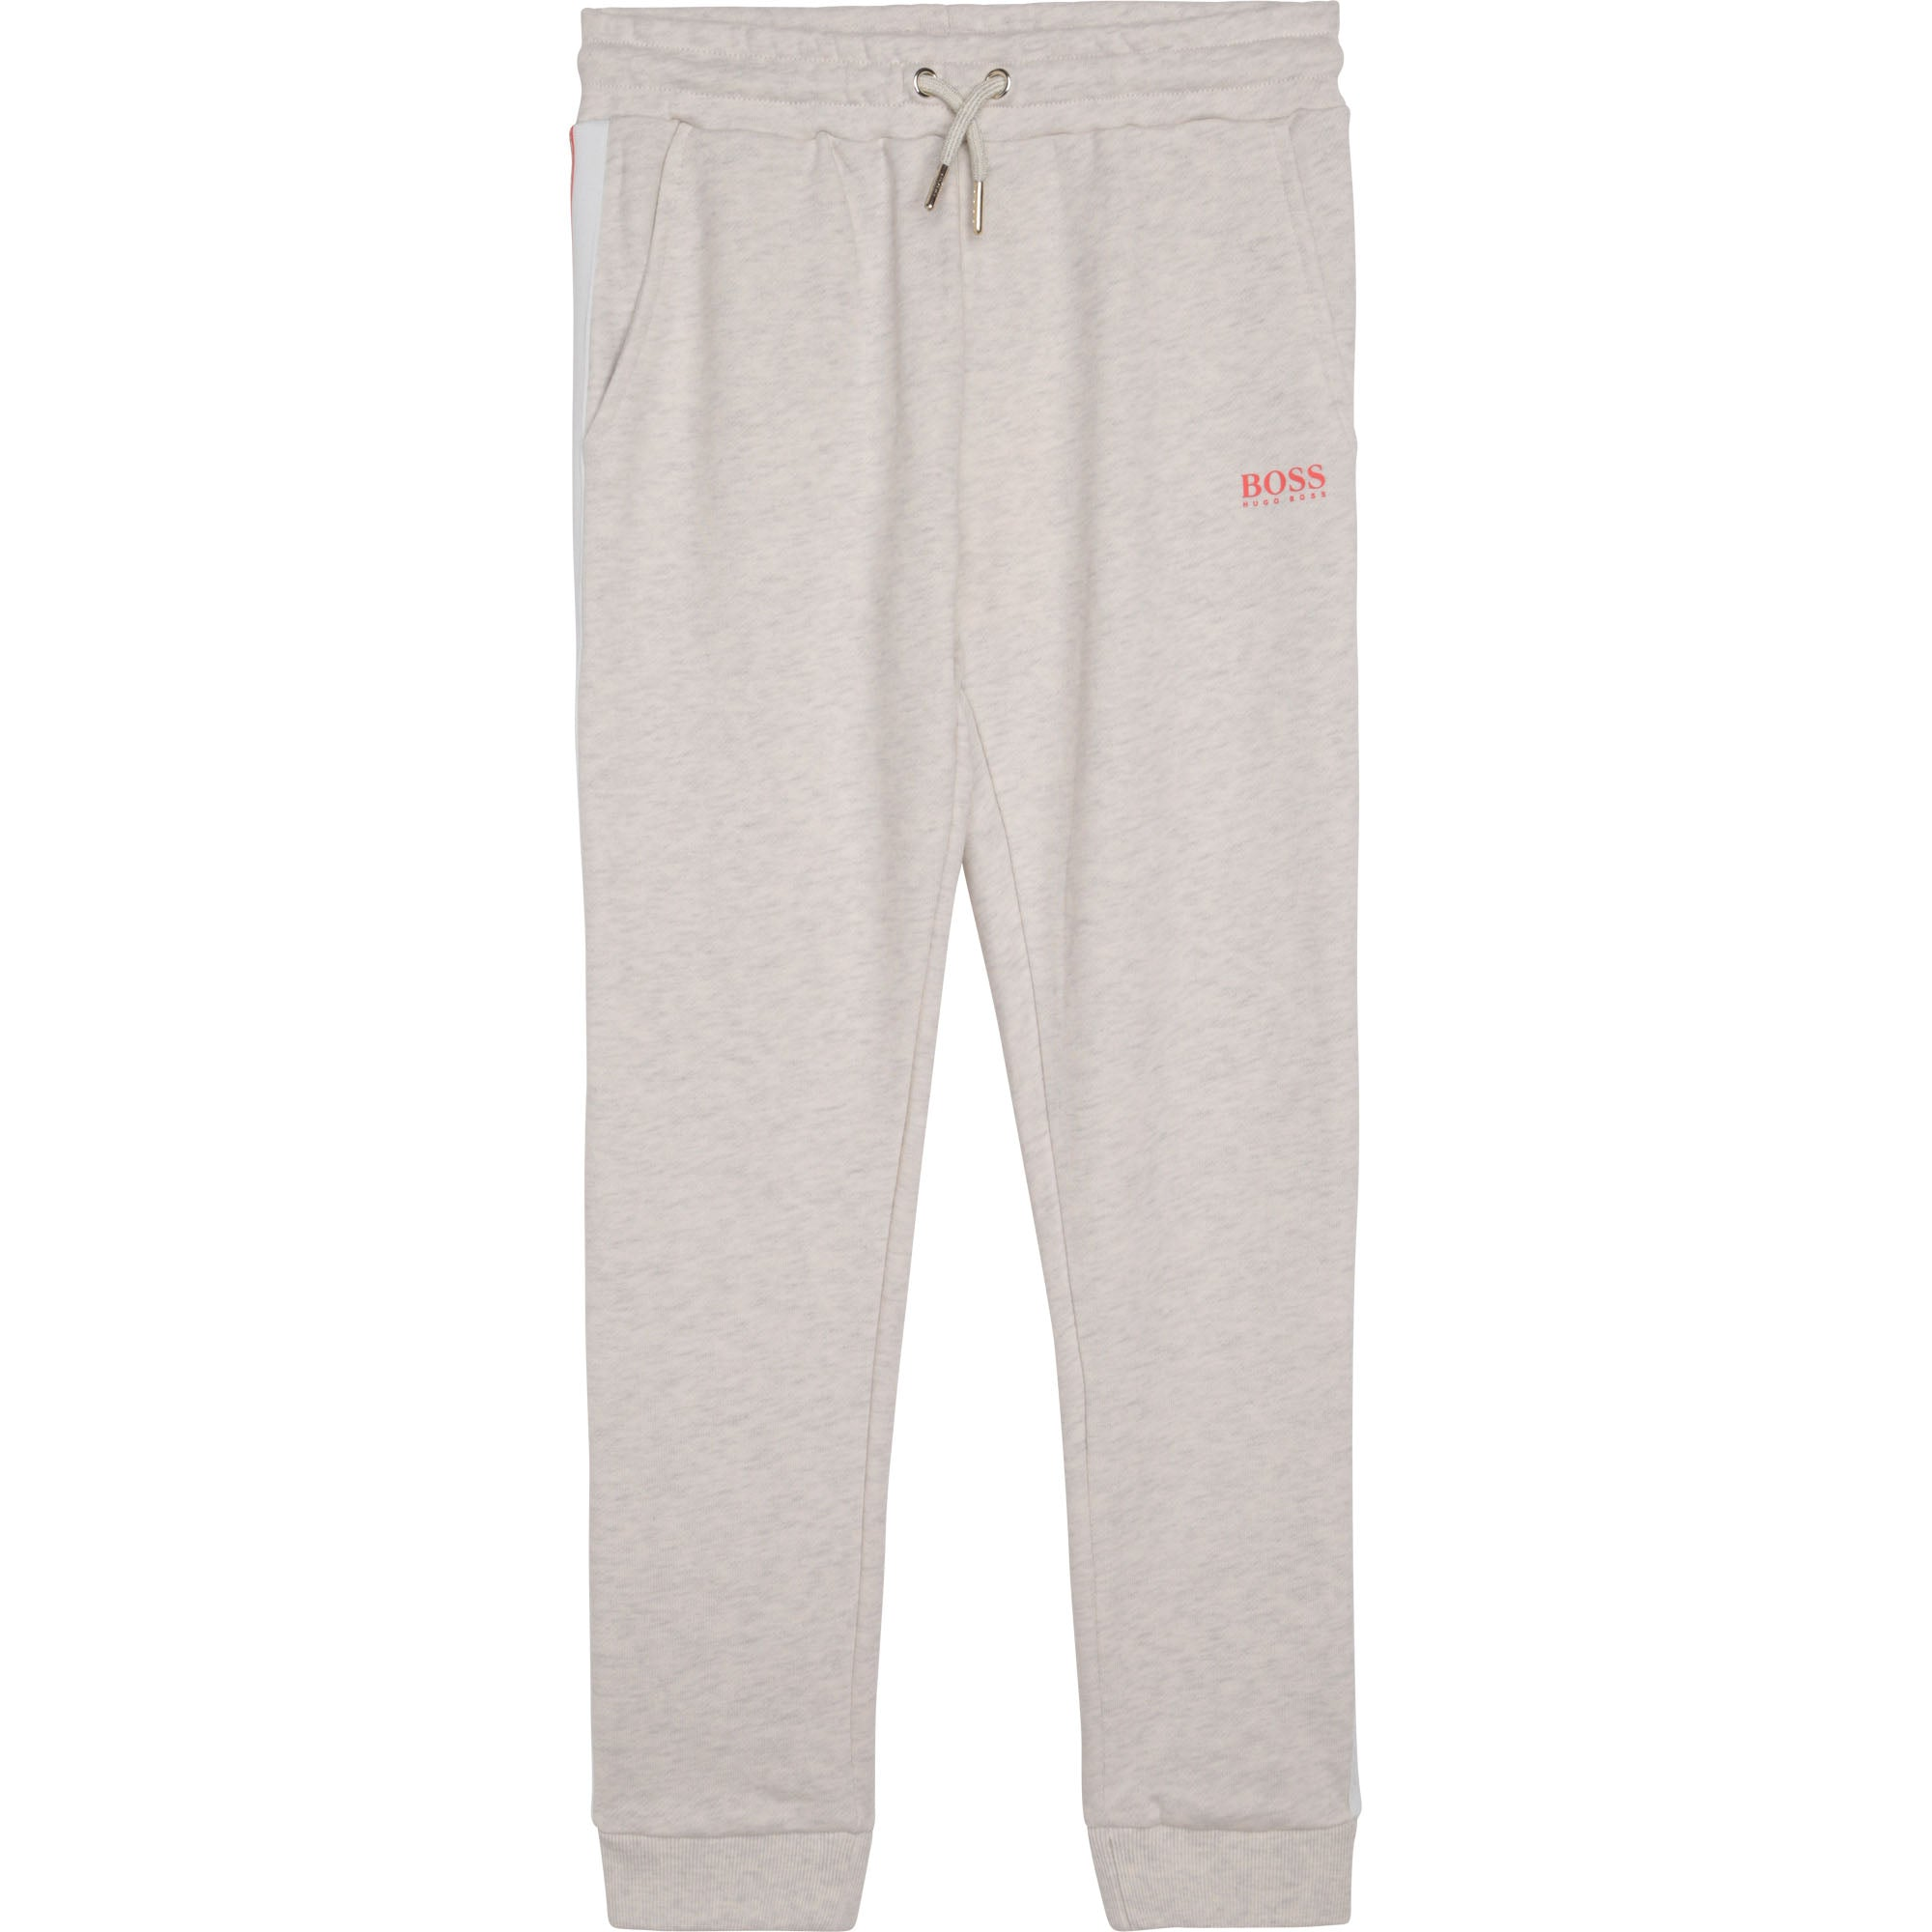 HUGO BOSS J14218 GIRLS JOGGING BOTTOMS SAND CHINE